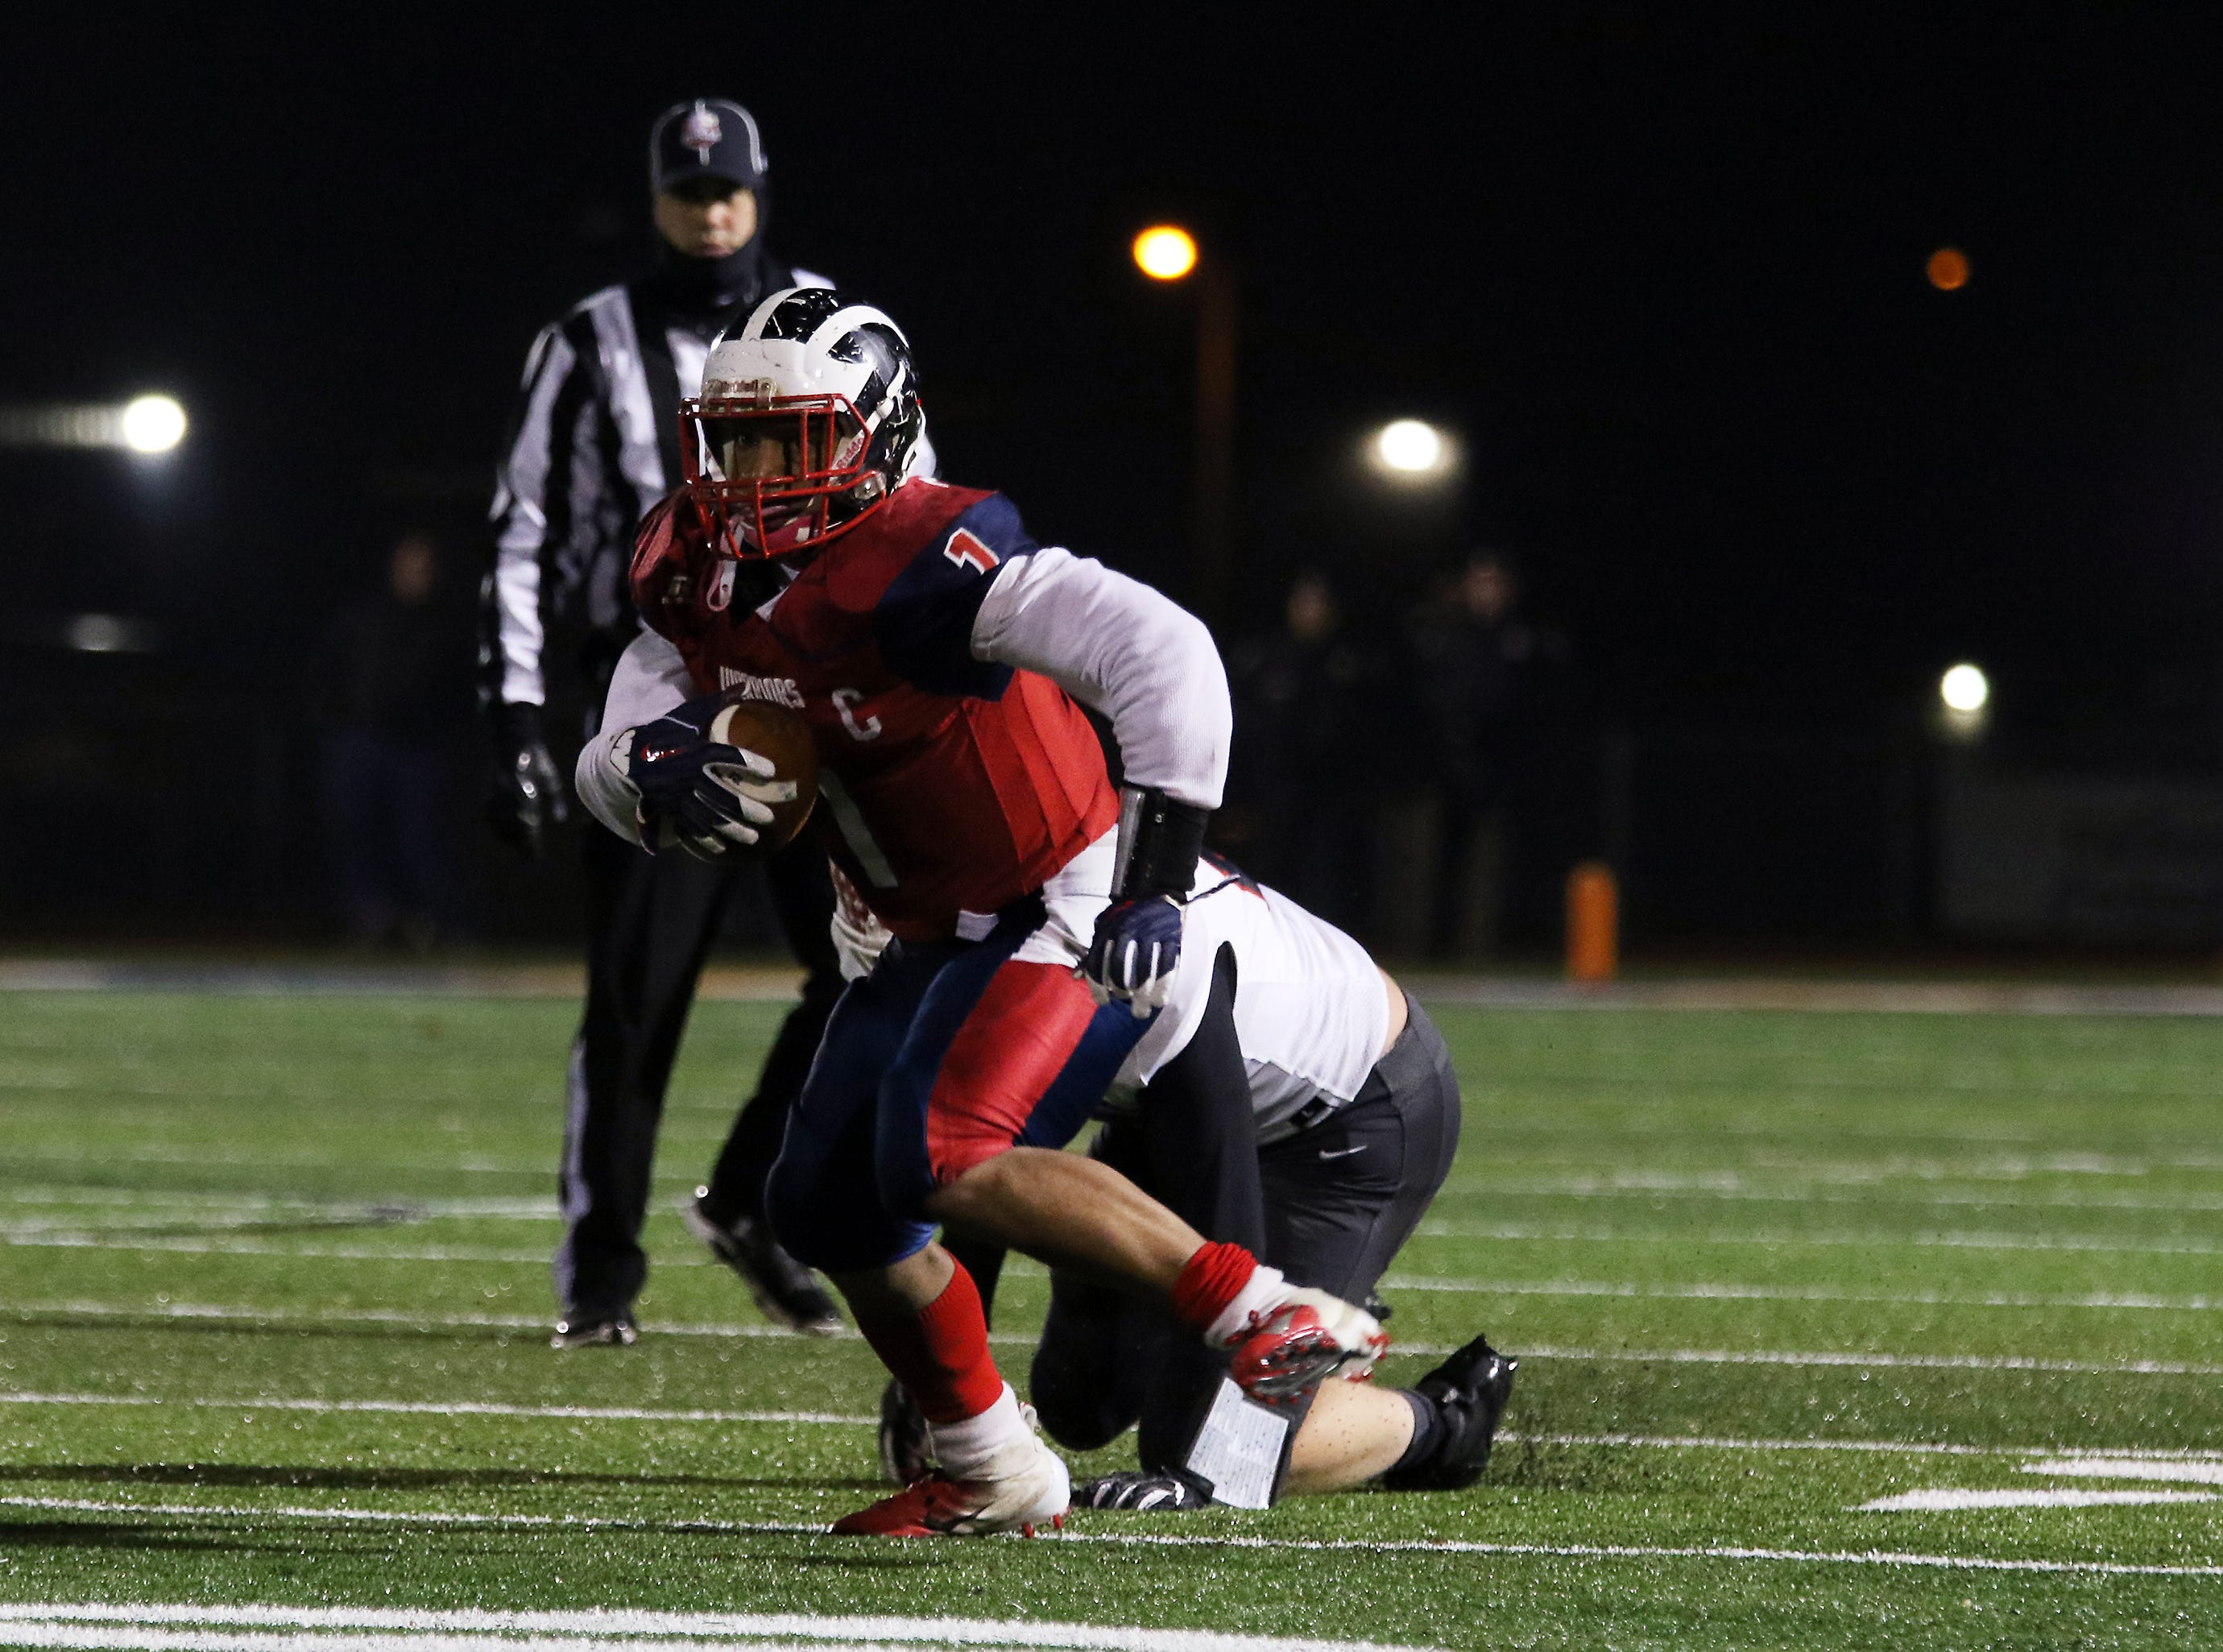 Sheridan's Adam Boyle tries to tackle an Eastmoor ball carrier.